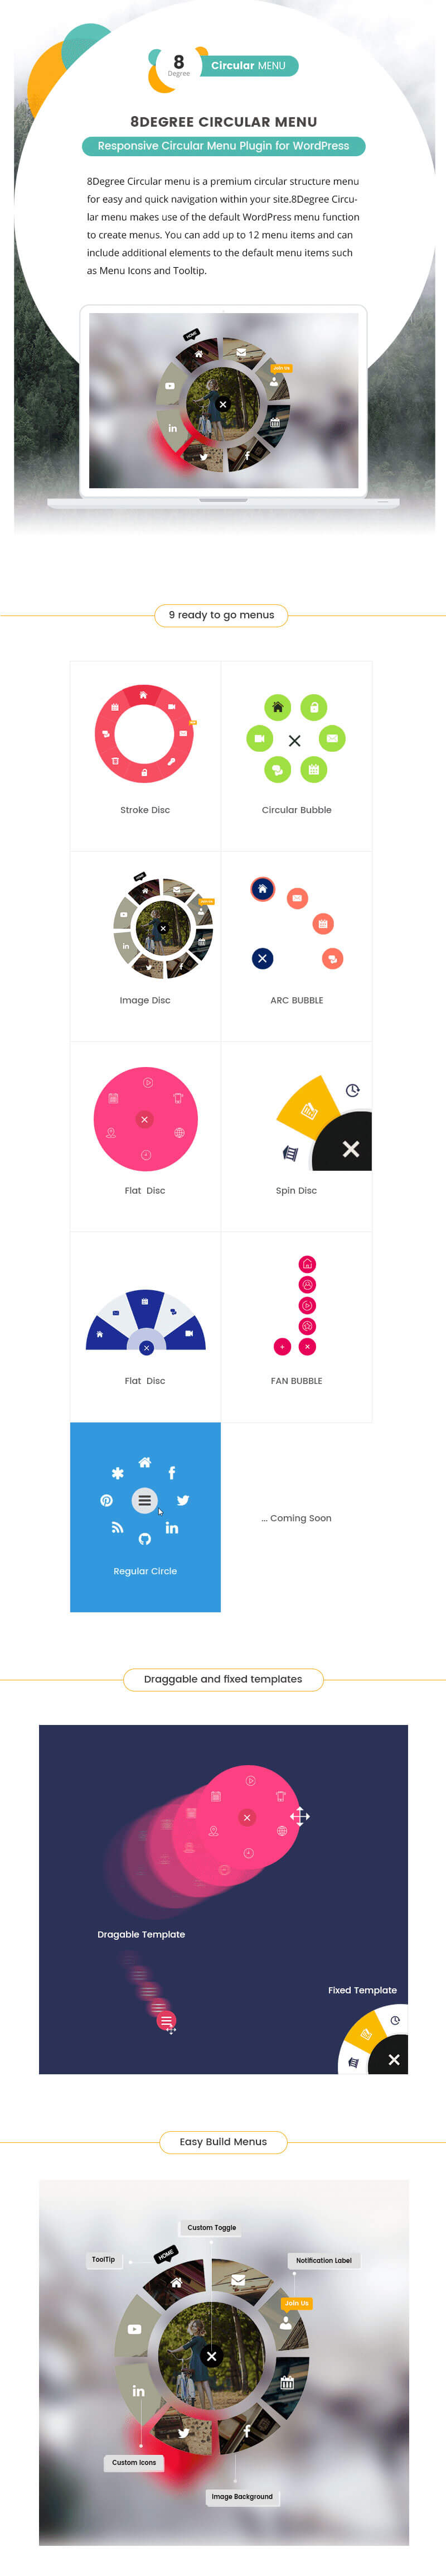 Eight Degree Circular Menu – Floating Circular Navigation Menu for WordPress